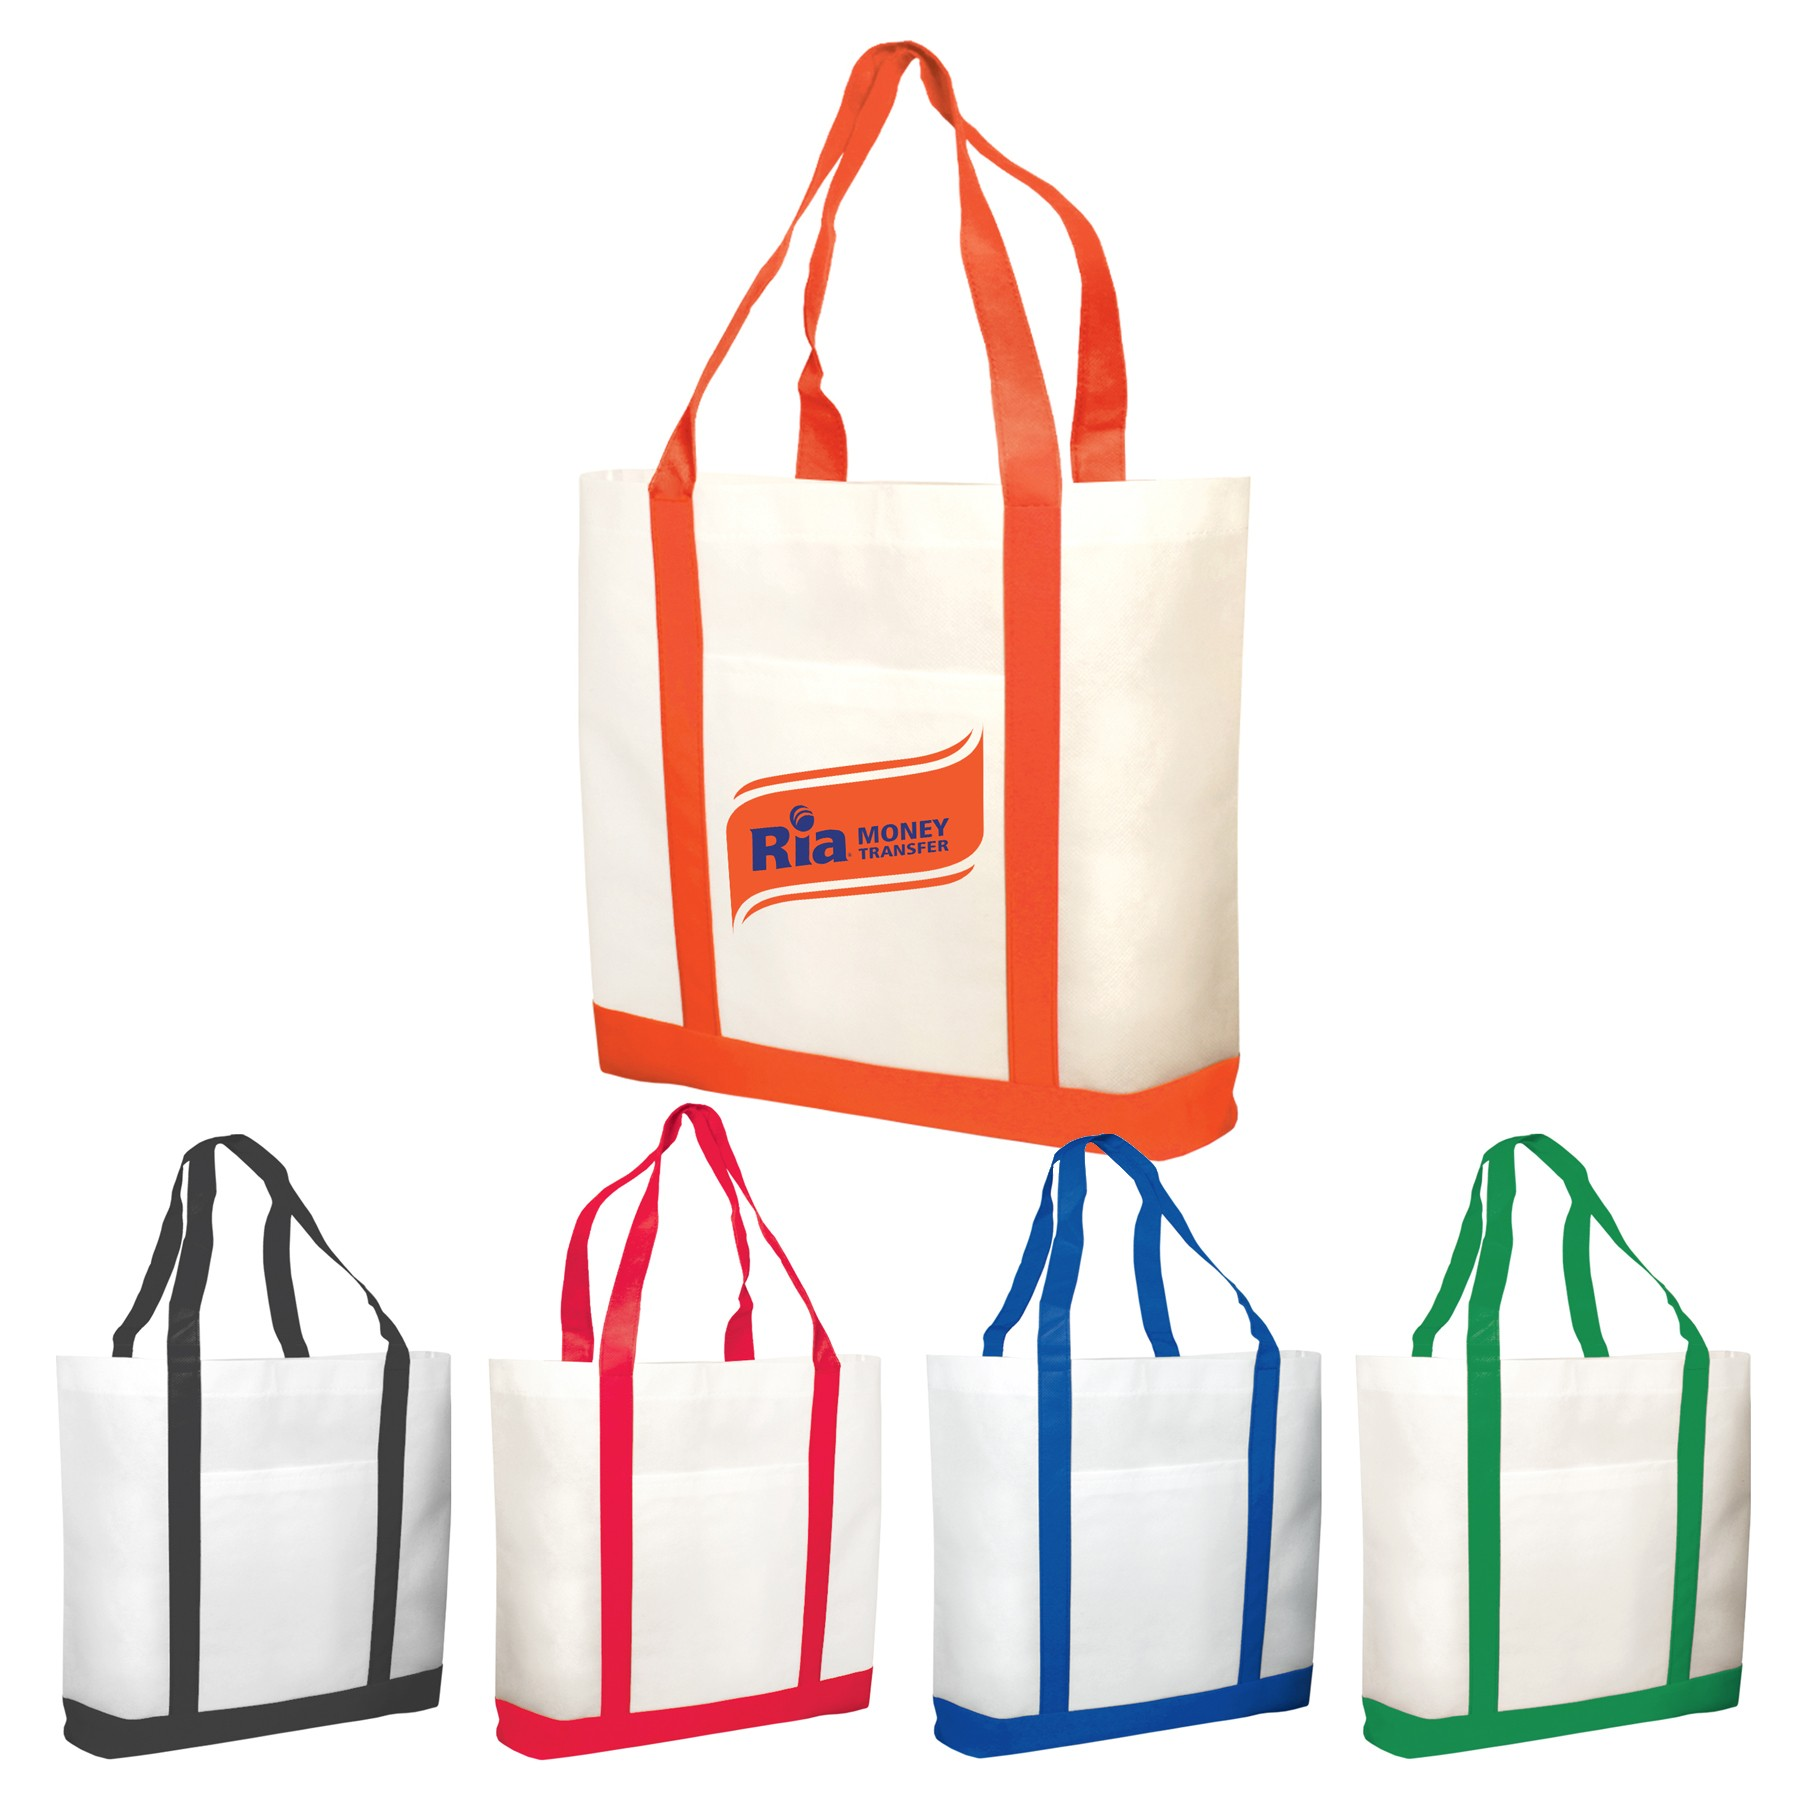 Promotional Two Tone Shopping Tote Bags